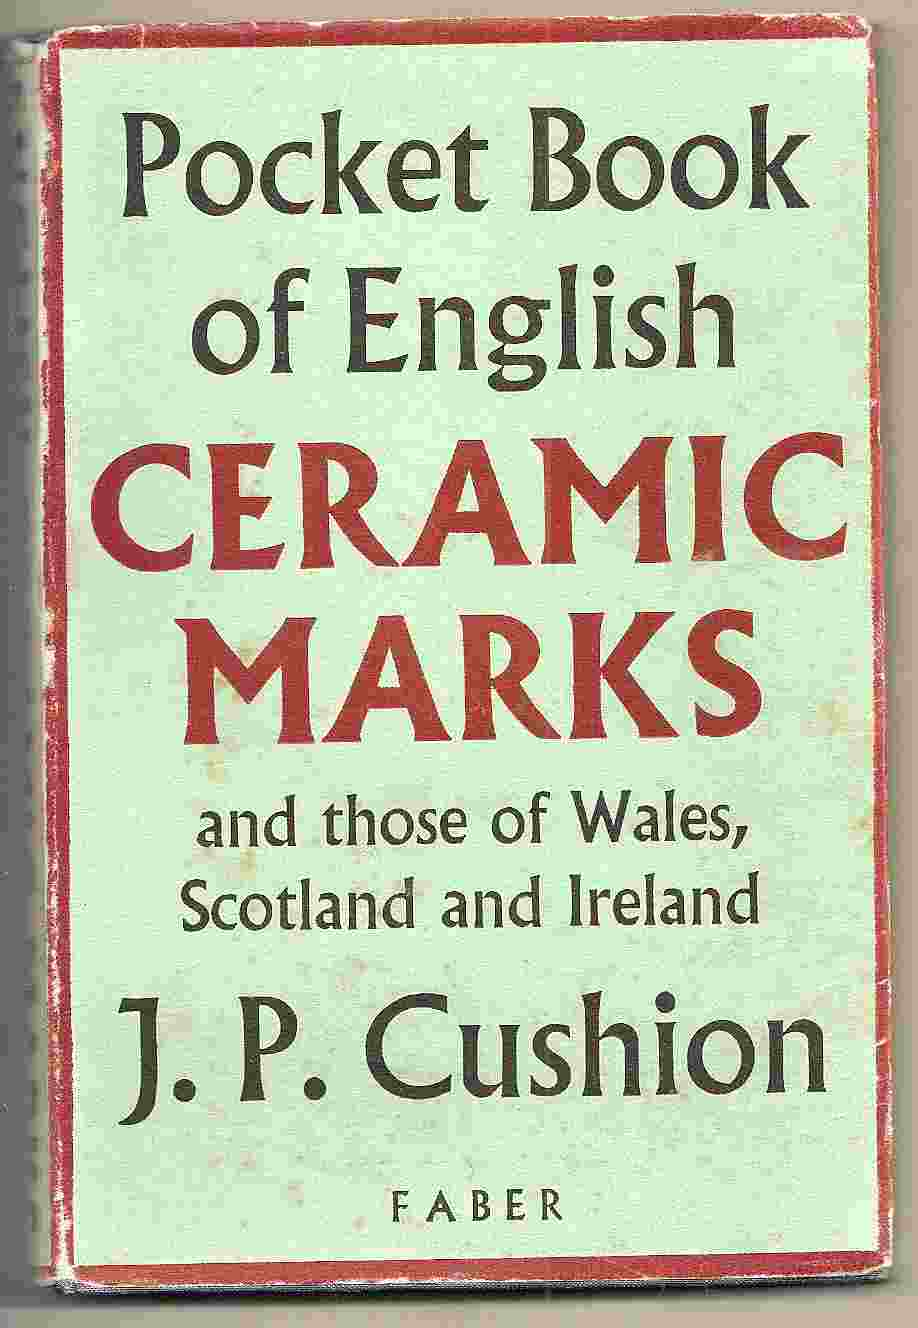 Image for POCKET BOOK OF ENGLISH CERAMIC MARKS AND THOSE OF WALES, SCOTLAND & IRELAND